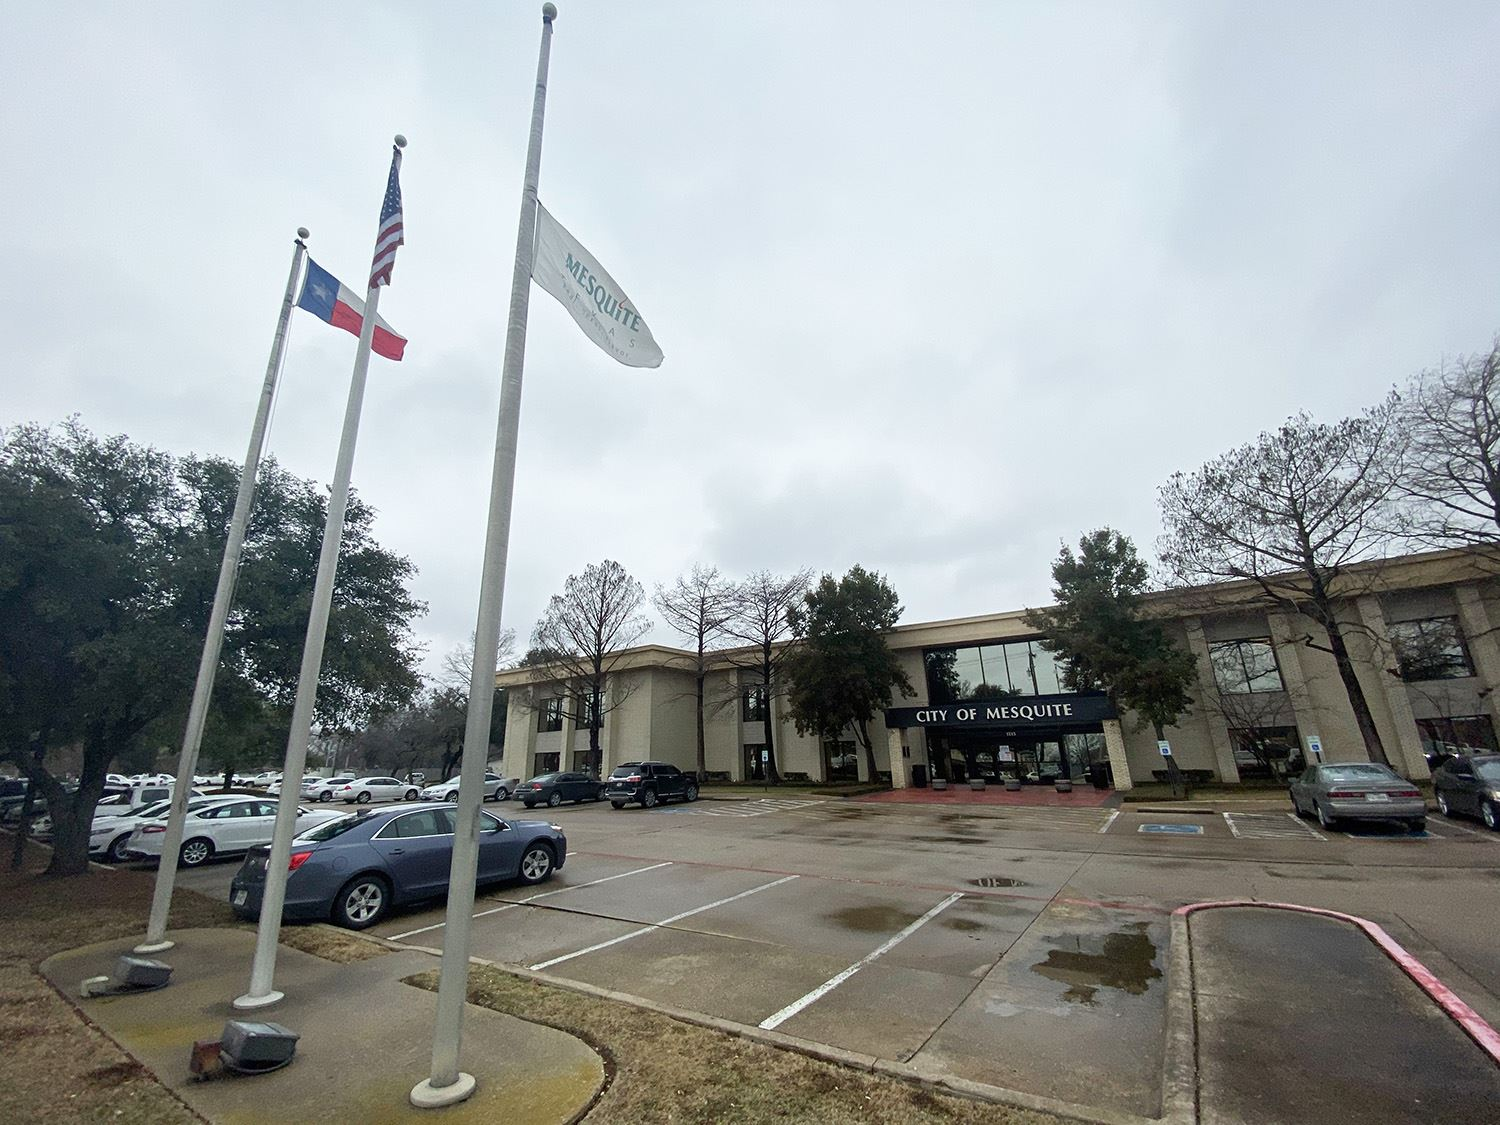 1-22-21 City flag at Municipal Center flown at half-staff for passing of former Mayor Bob Beard - Me